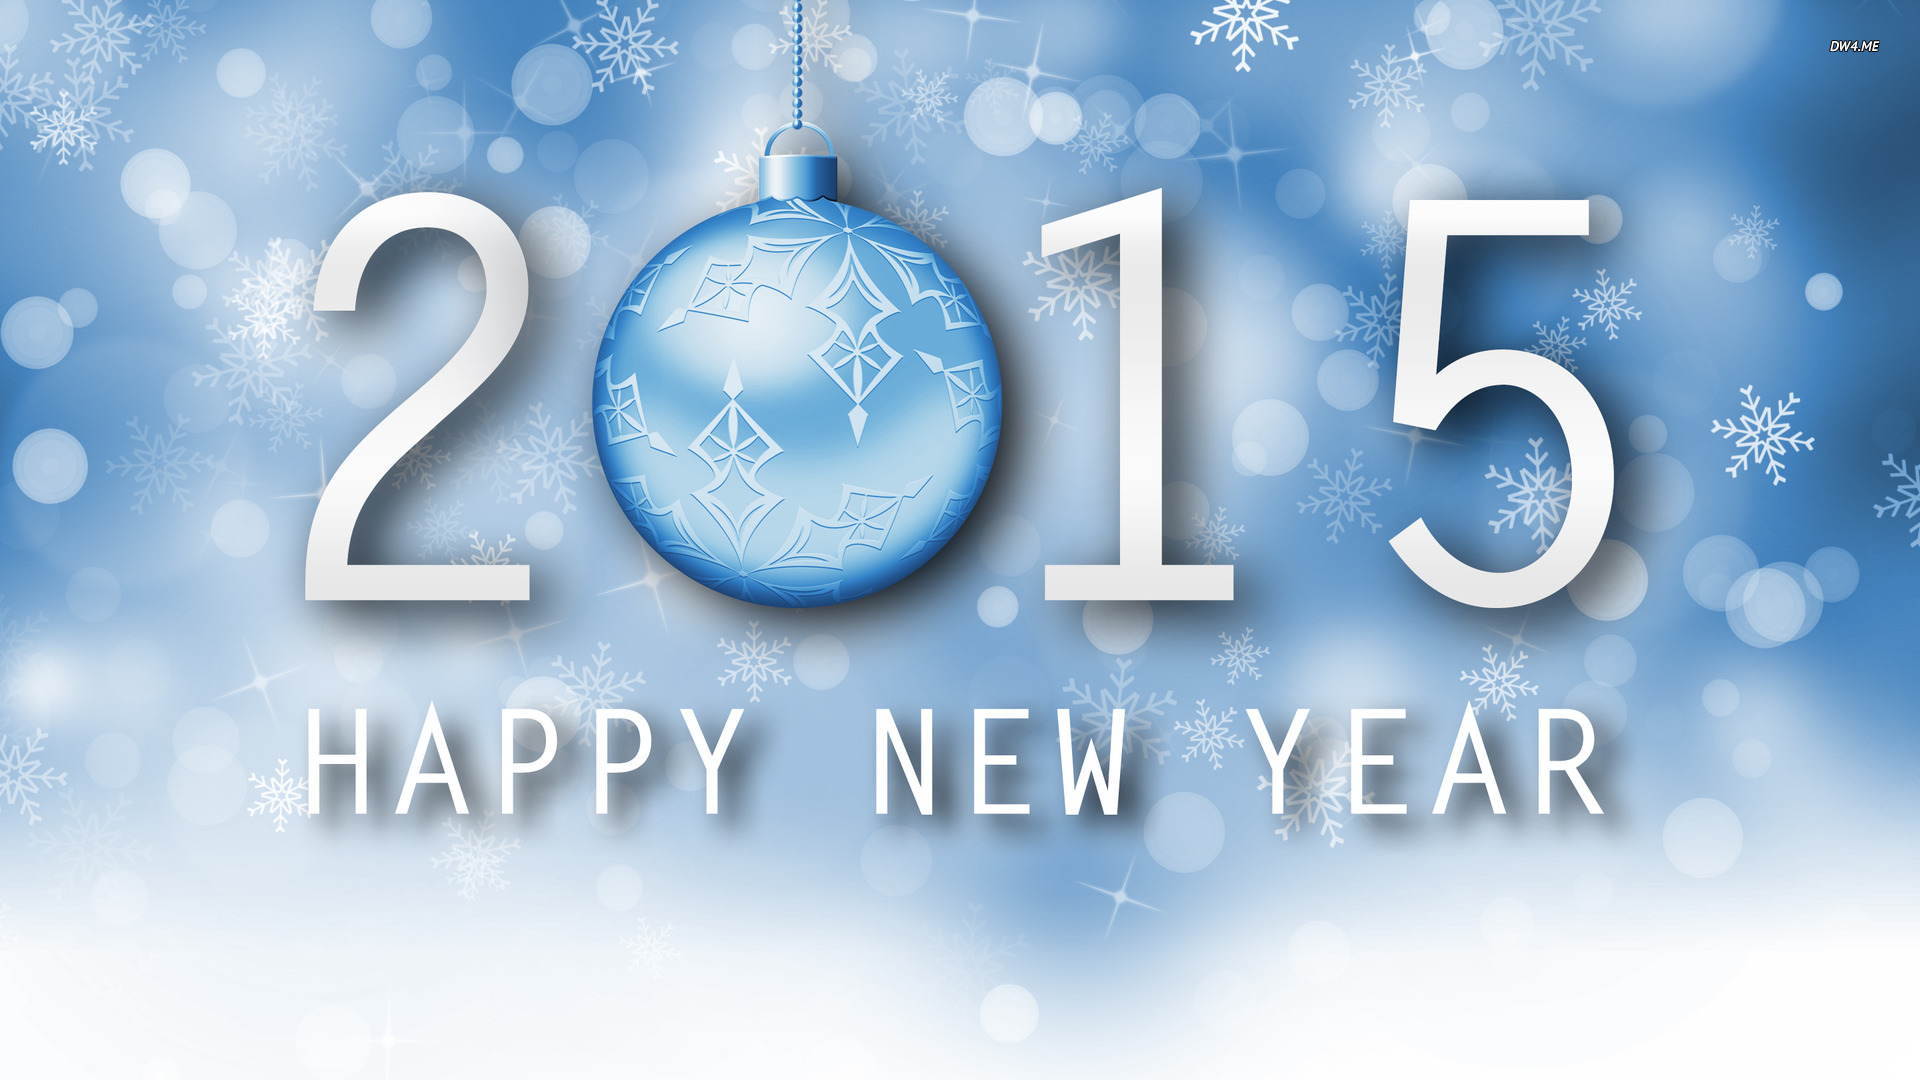 download Download Happy New Year 2015 Balls HD Wallpaper 1920x1080